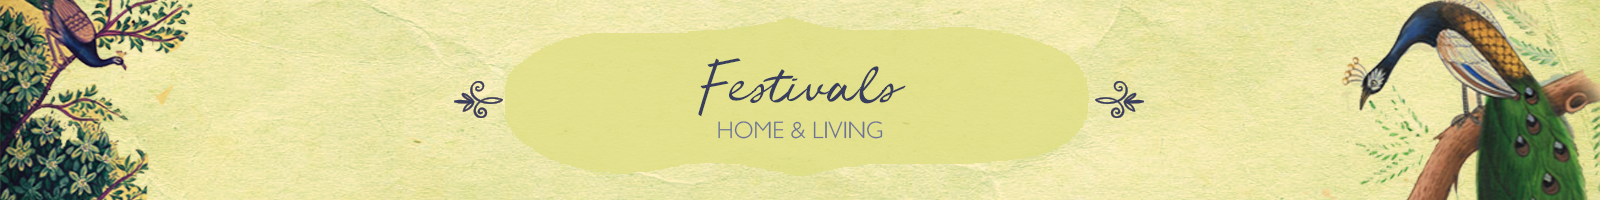 Authentic Handcrafted Products for Festivals by The India Craft House